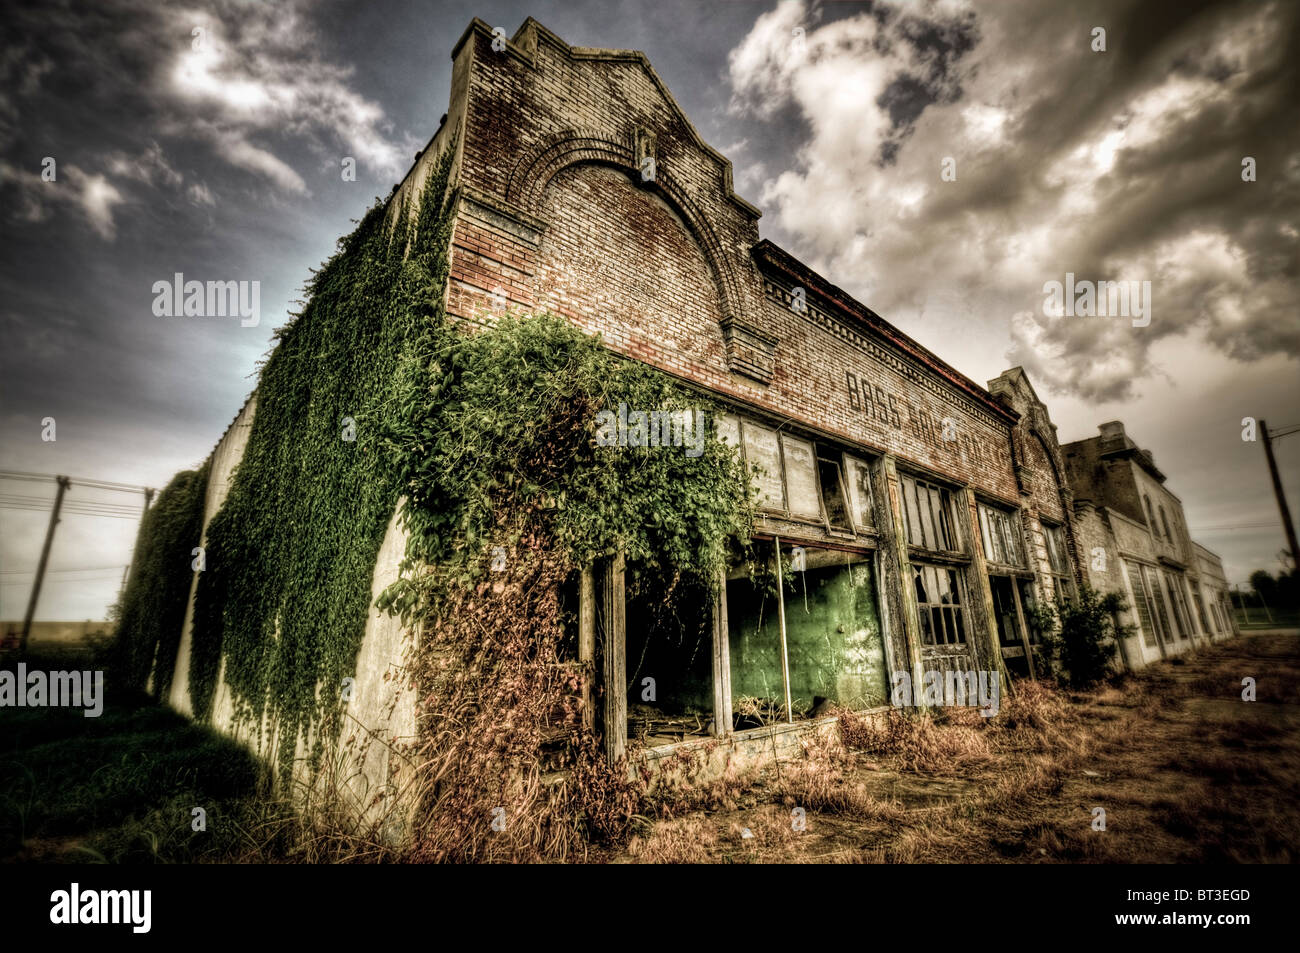 Bass Sales Co. Building in a derelict condition in USA - Stock Image